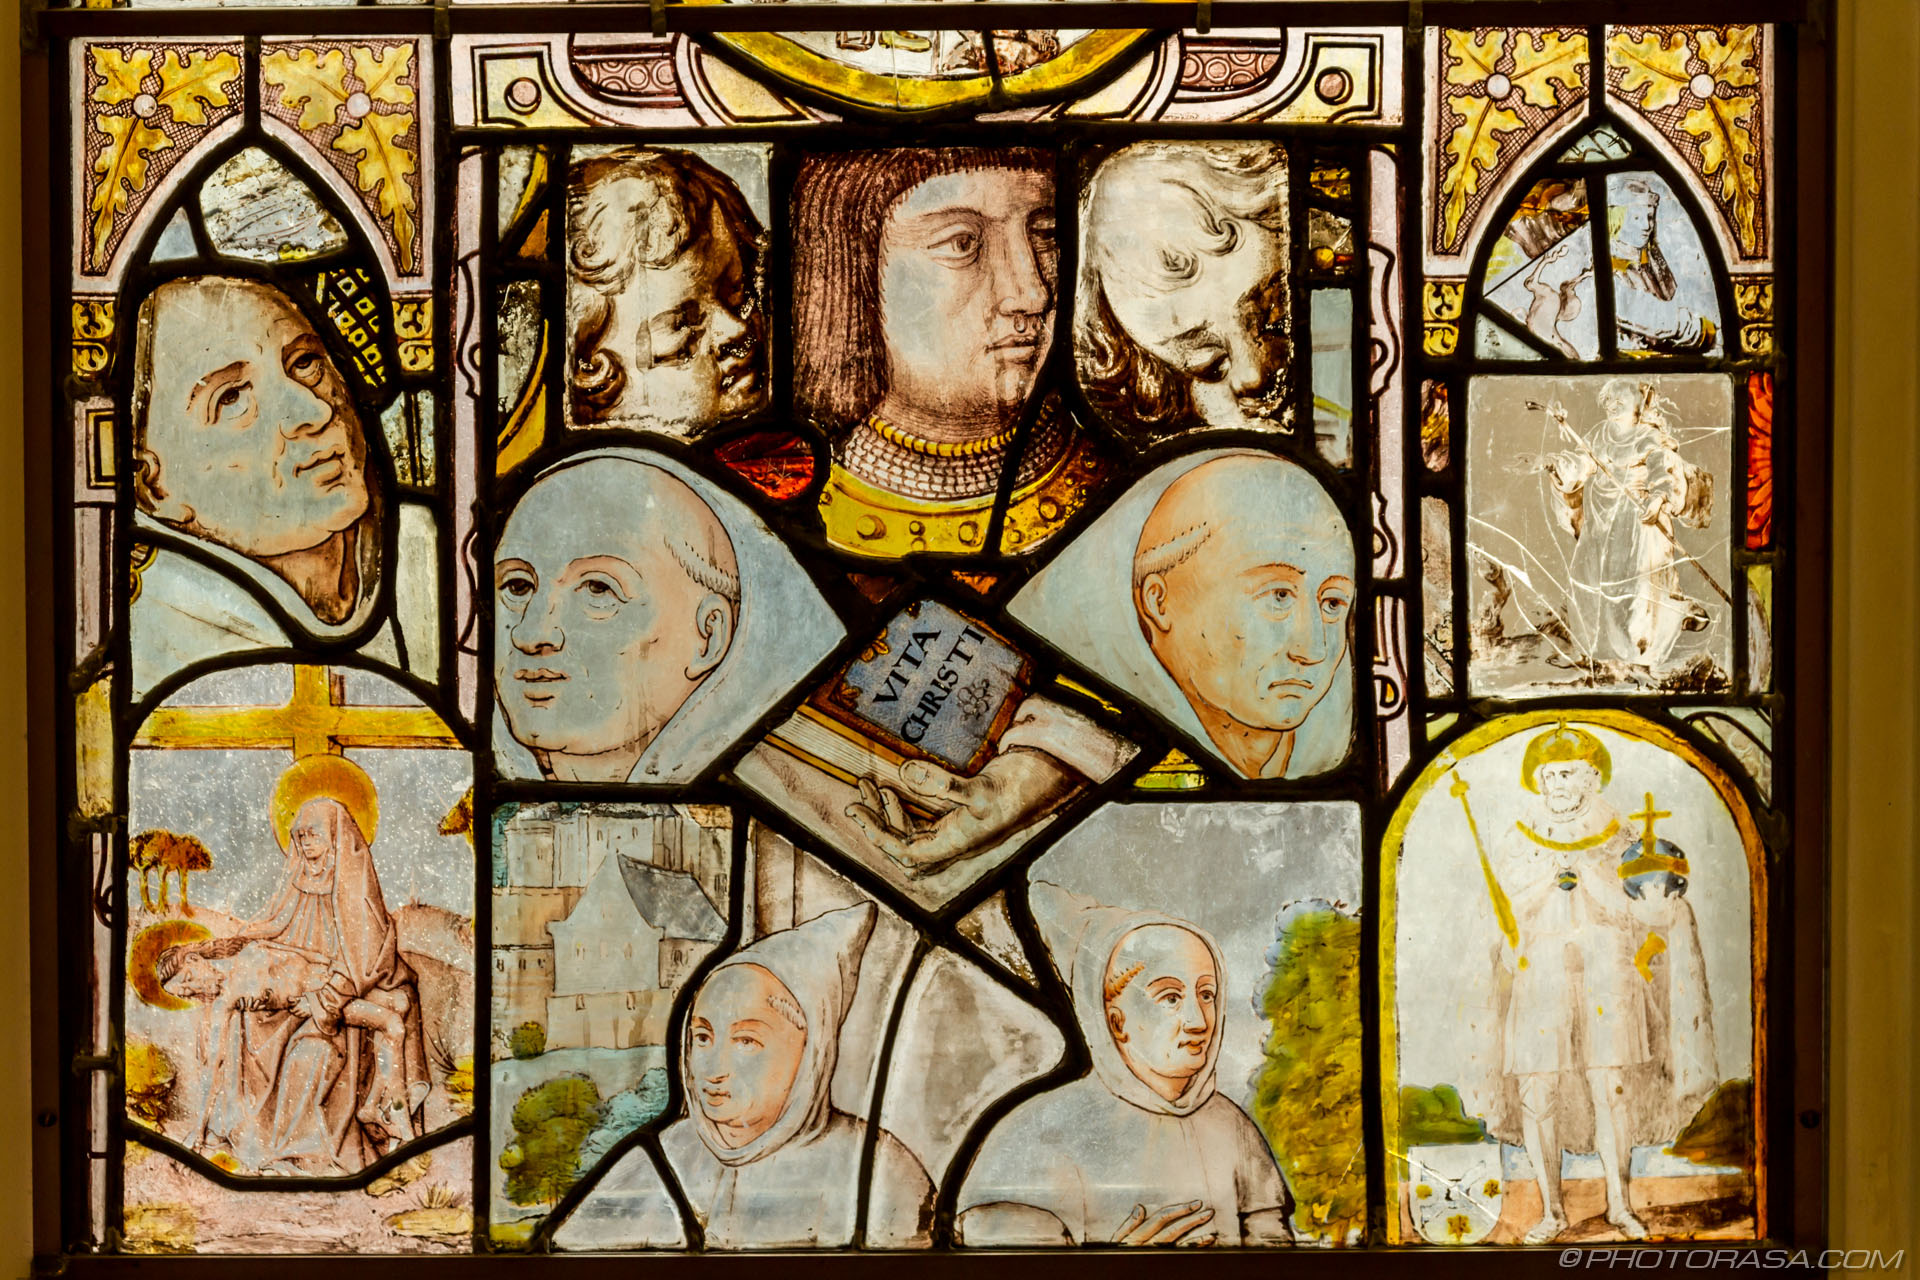 http://photorasa.com/old-dutch-and-flemish-stained-glass/stained-glass-patchwork-of-people-and-faces/